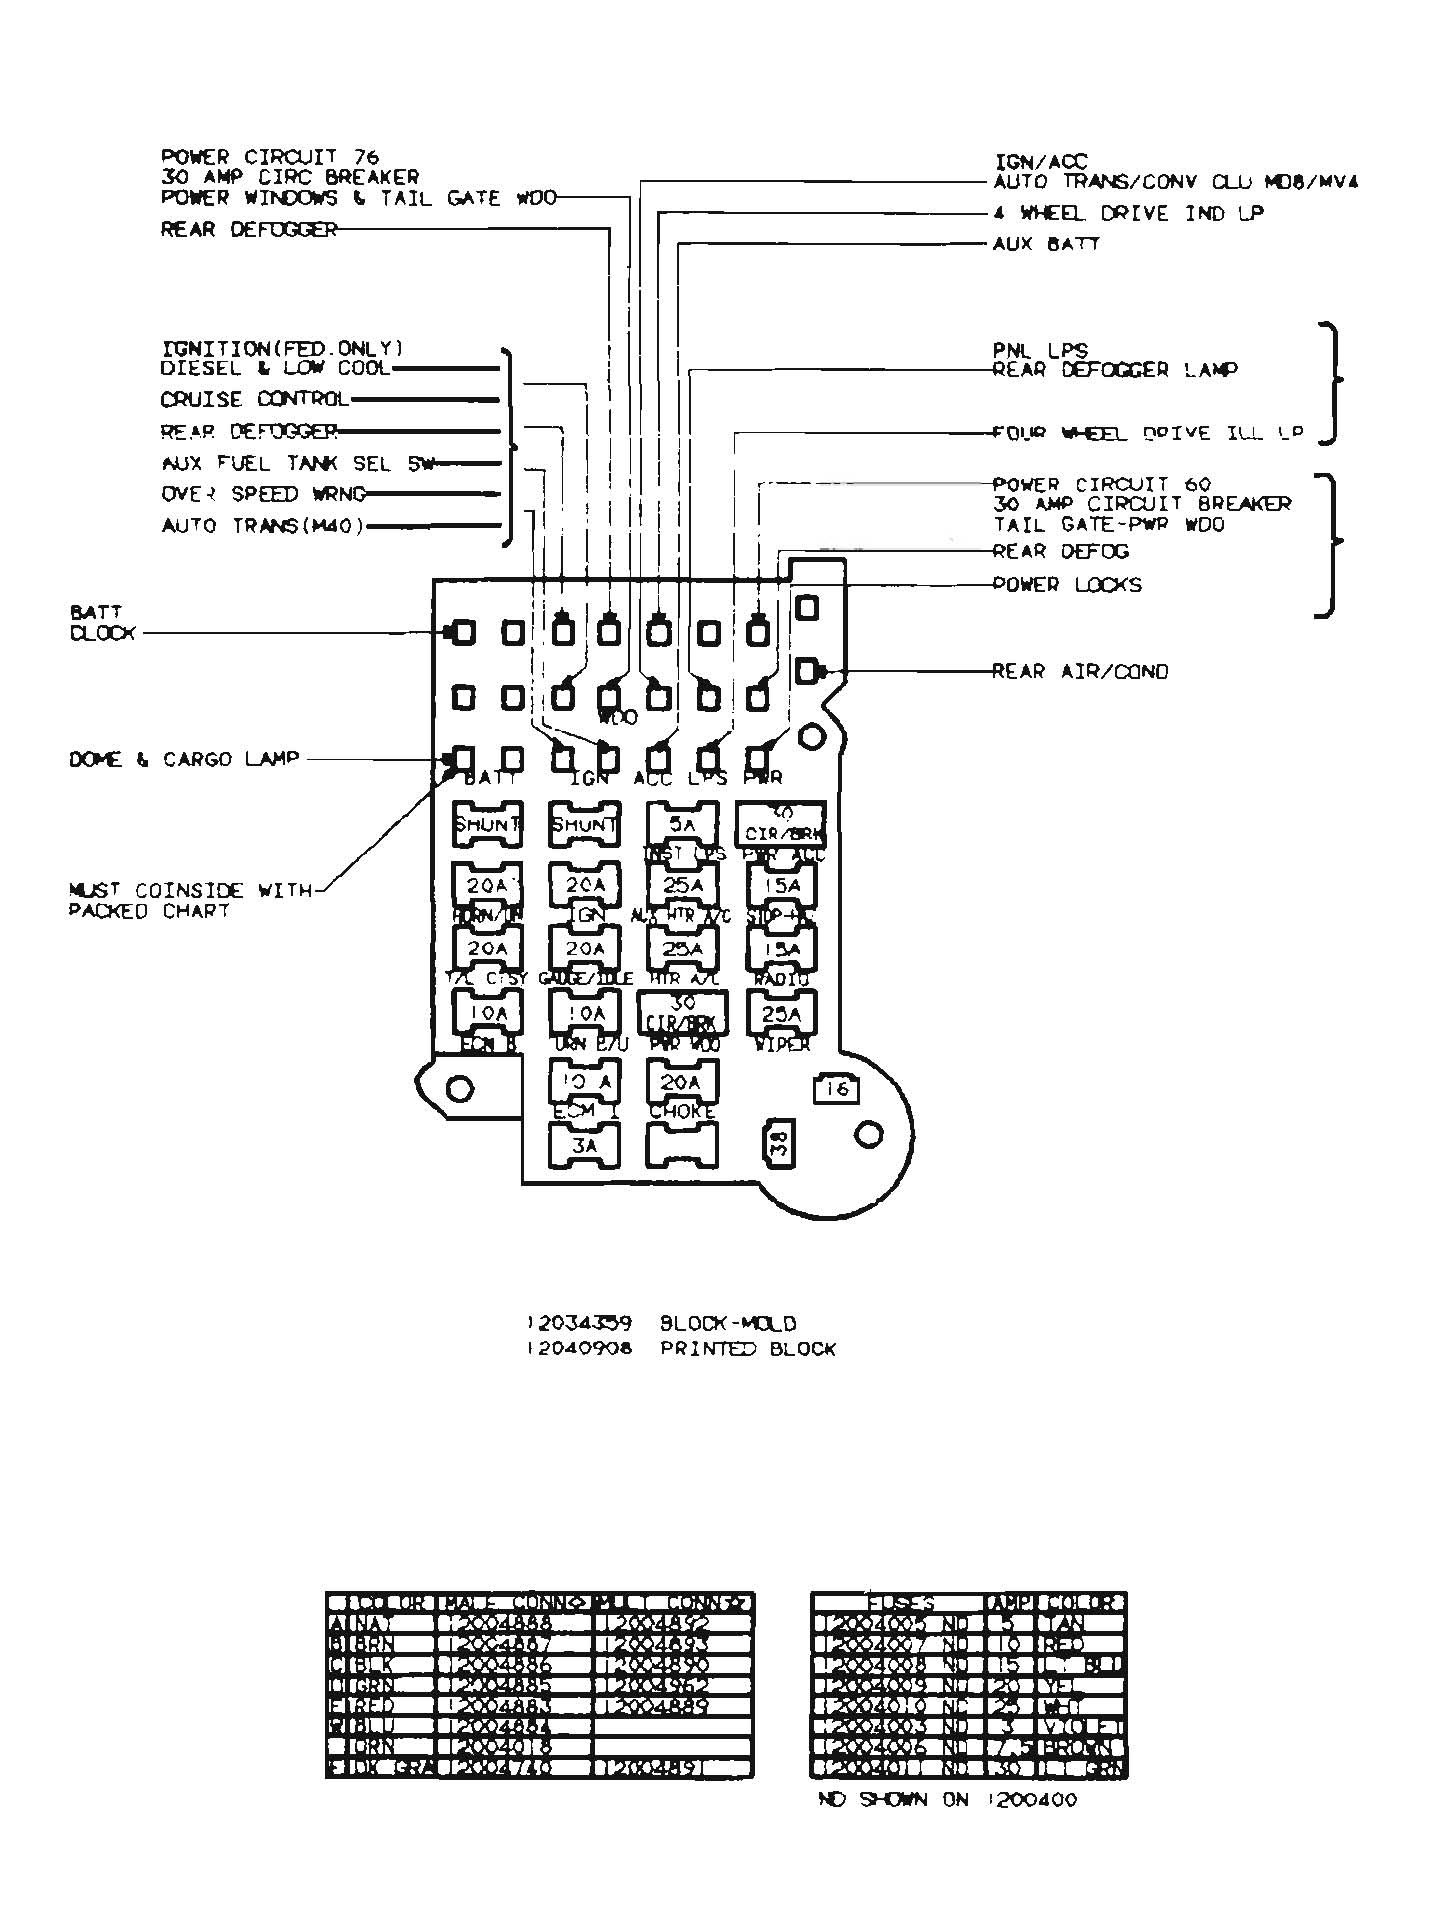 hight resolution of 1987 chevy camaro fuse box diagram wiring diagram expert86 camaro fuse box diagram wiring diagram centre